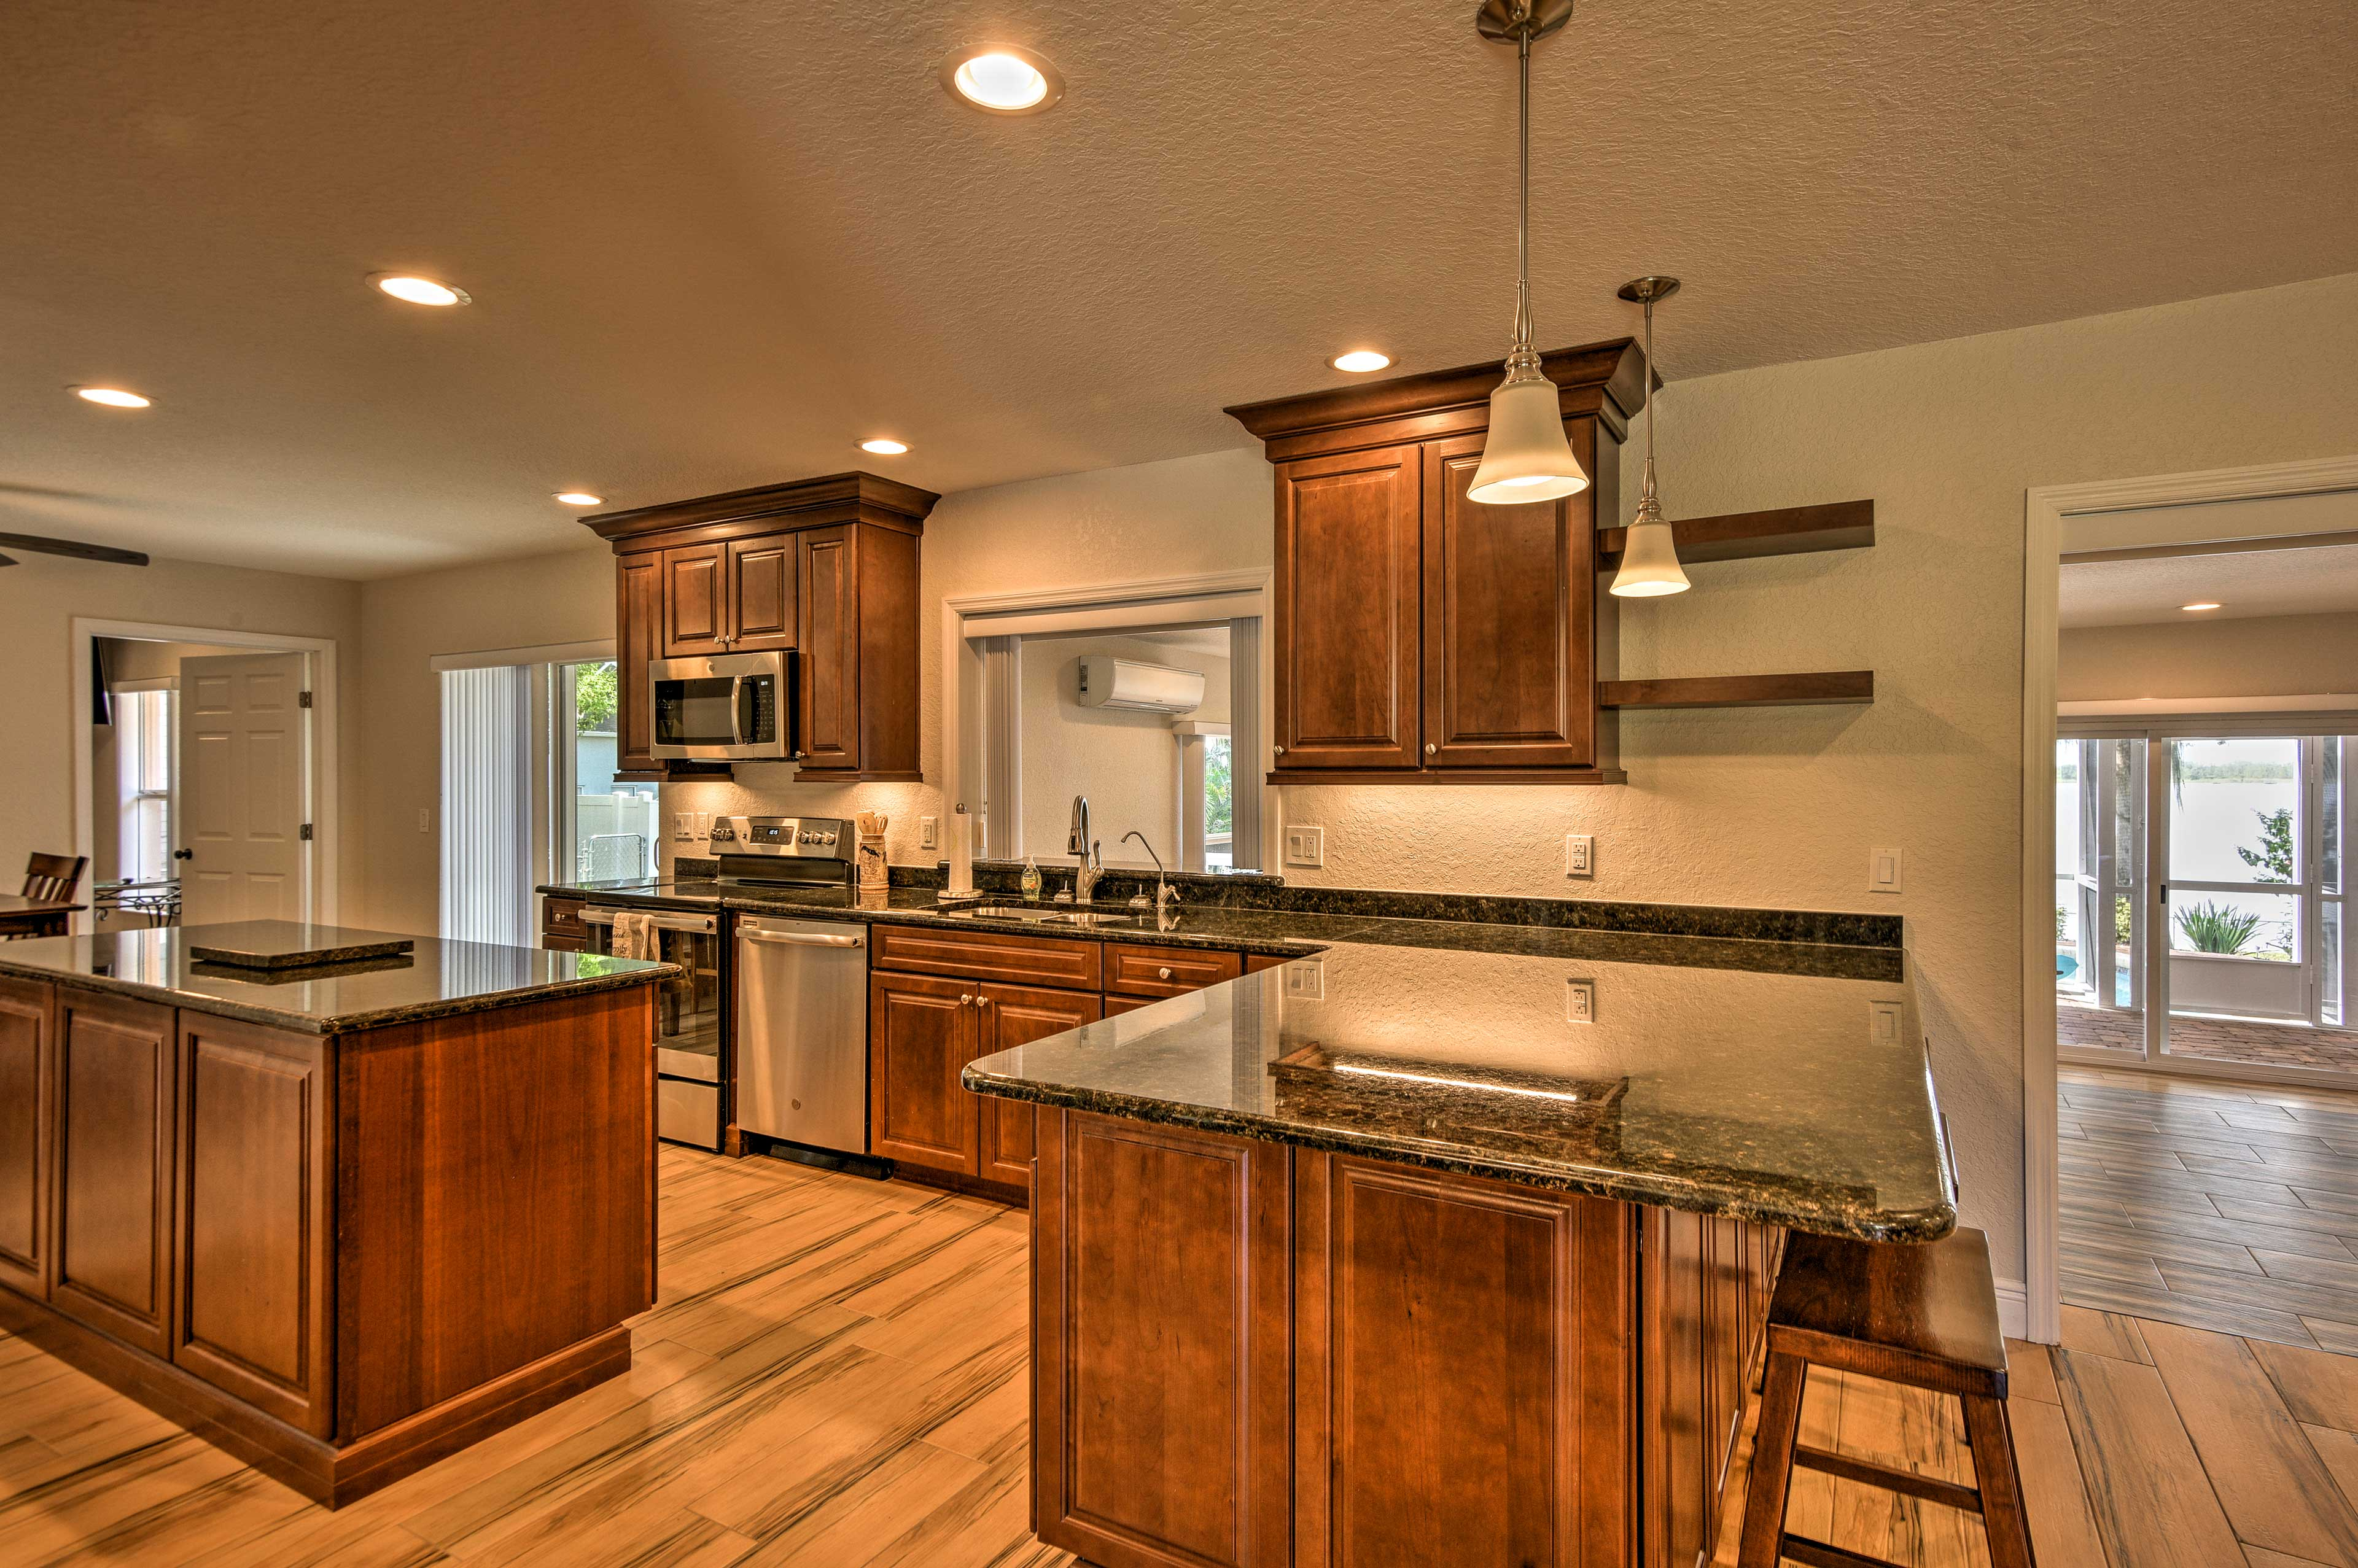 Stainless steep appliances and granite counters highlight the kitchen.